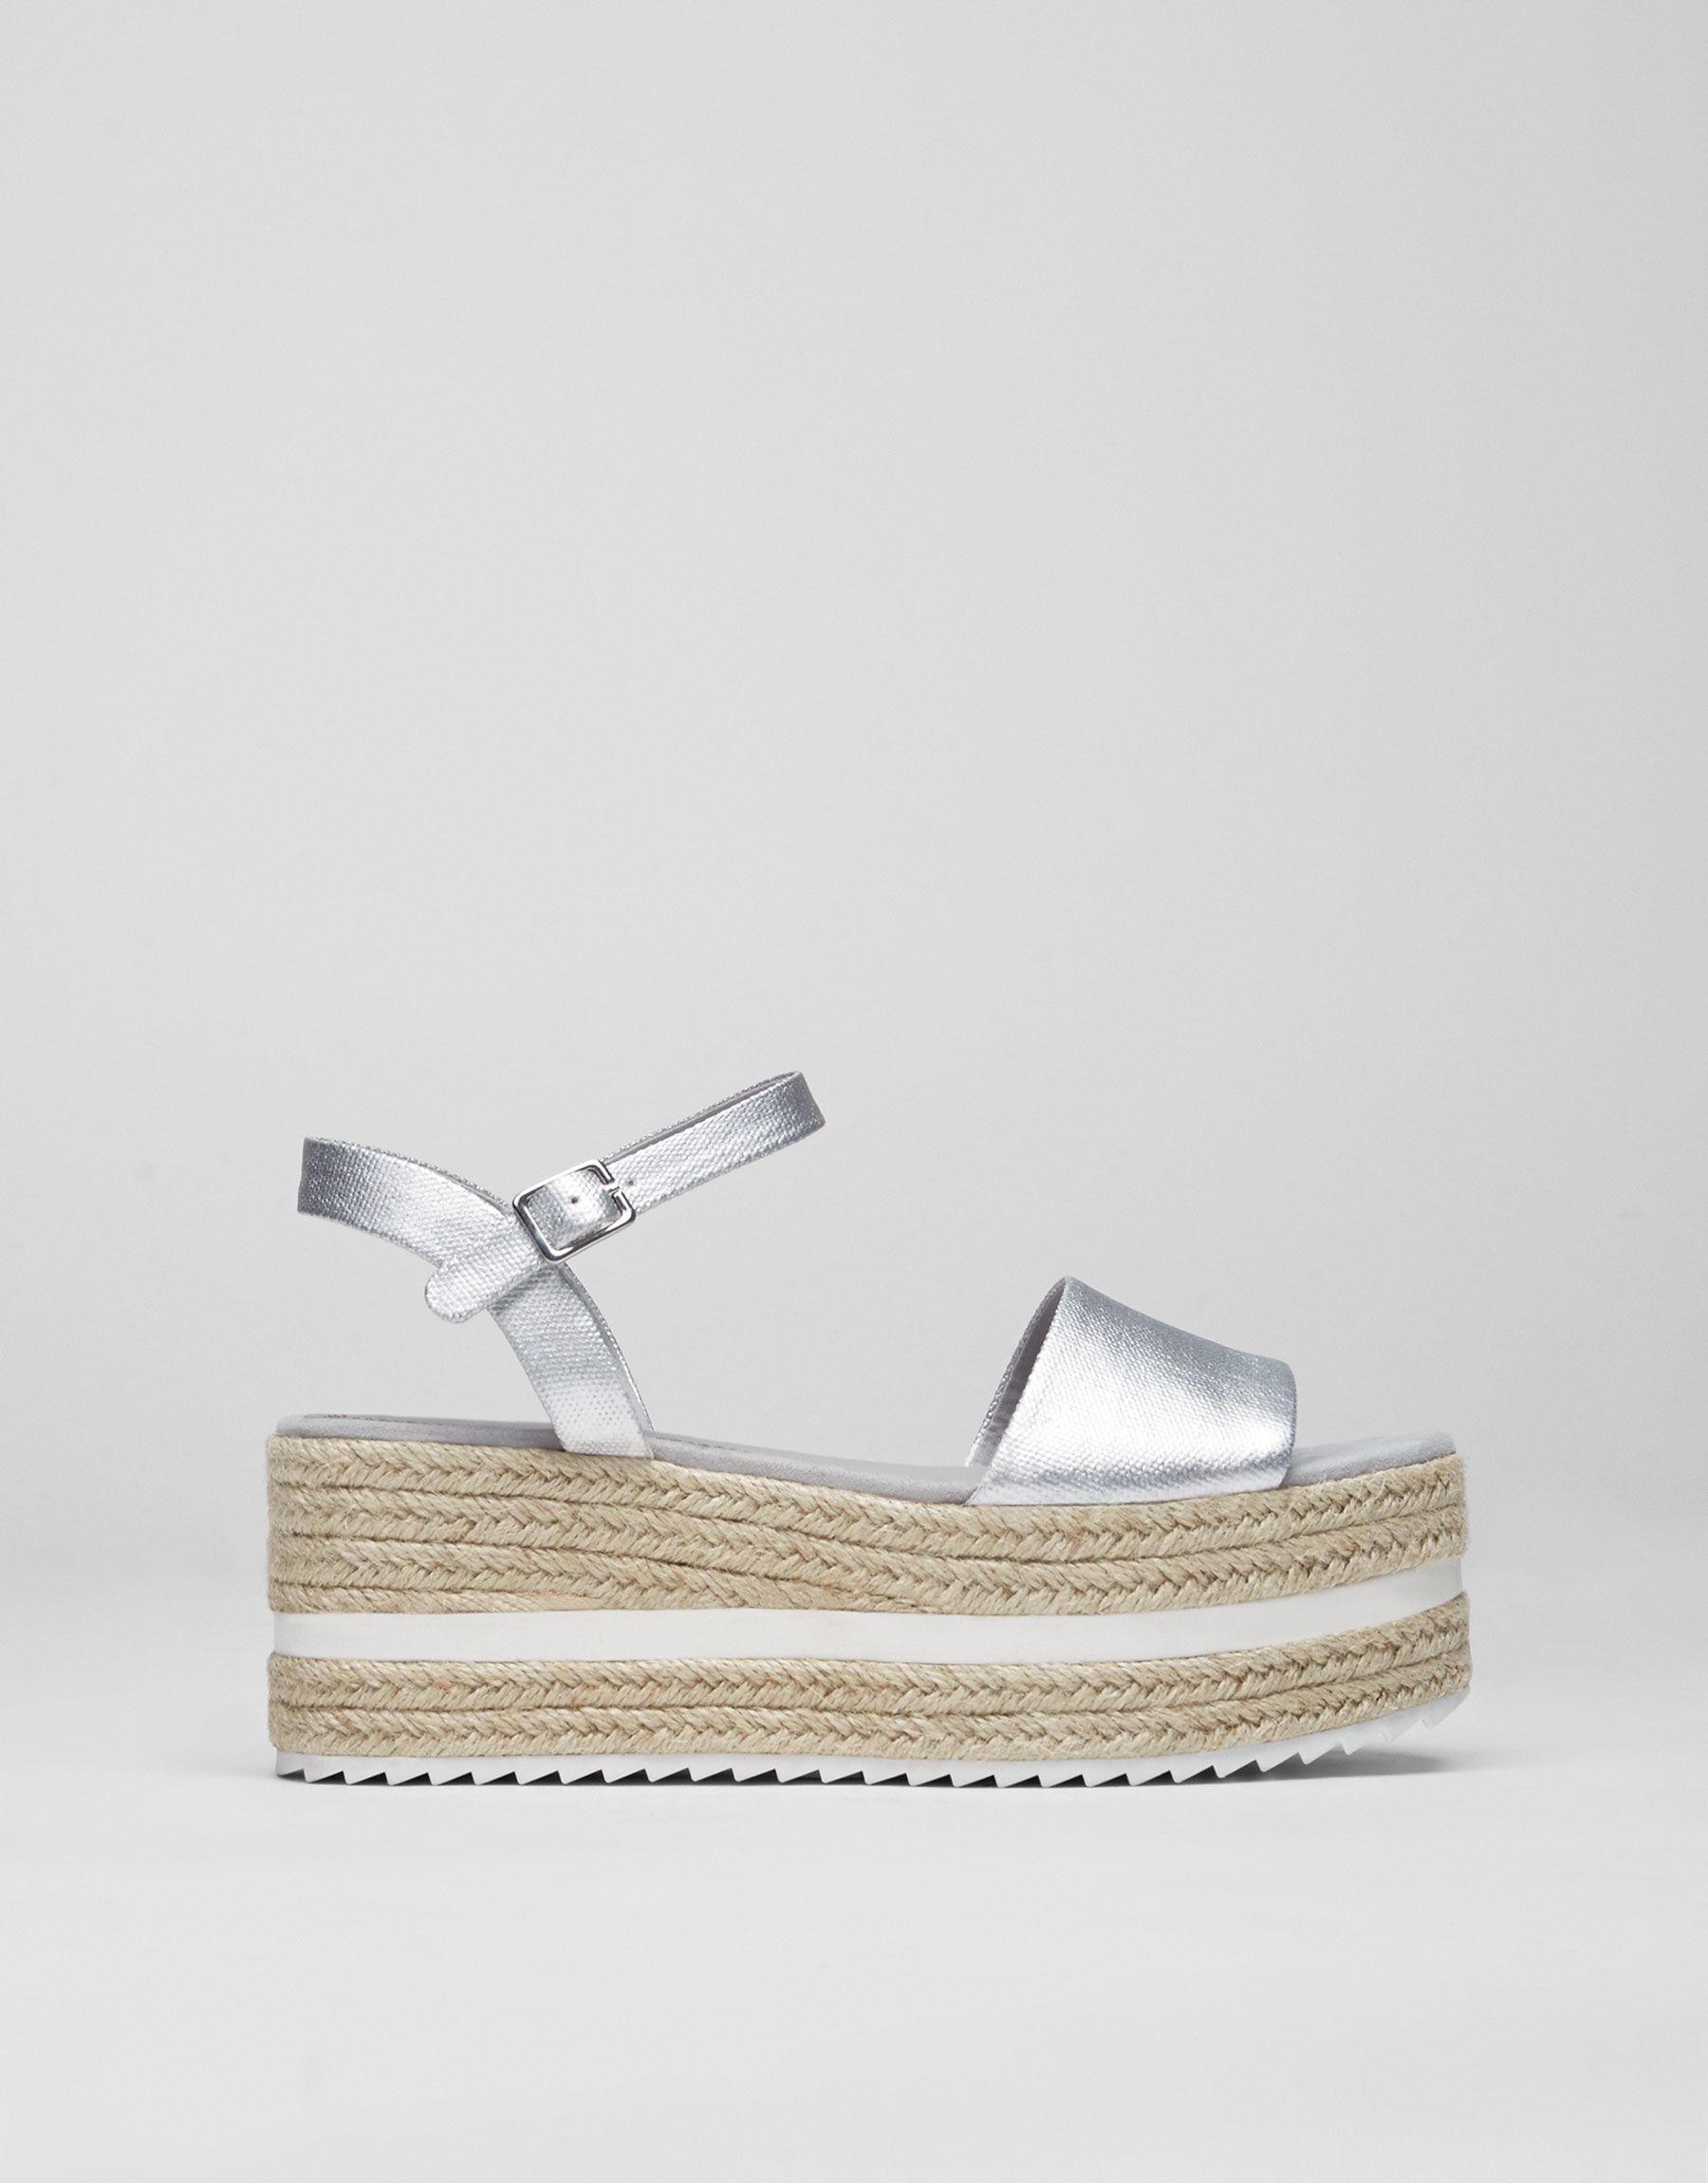 Silver-toned wedges with ankle strap